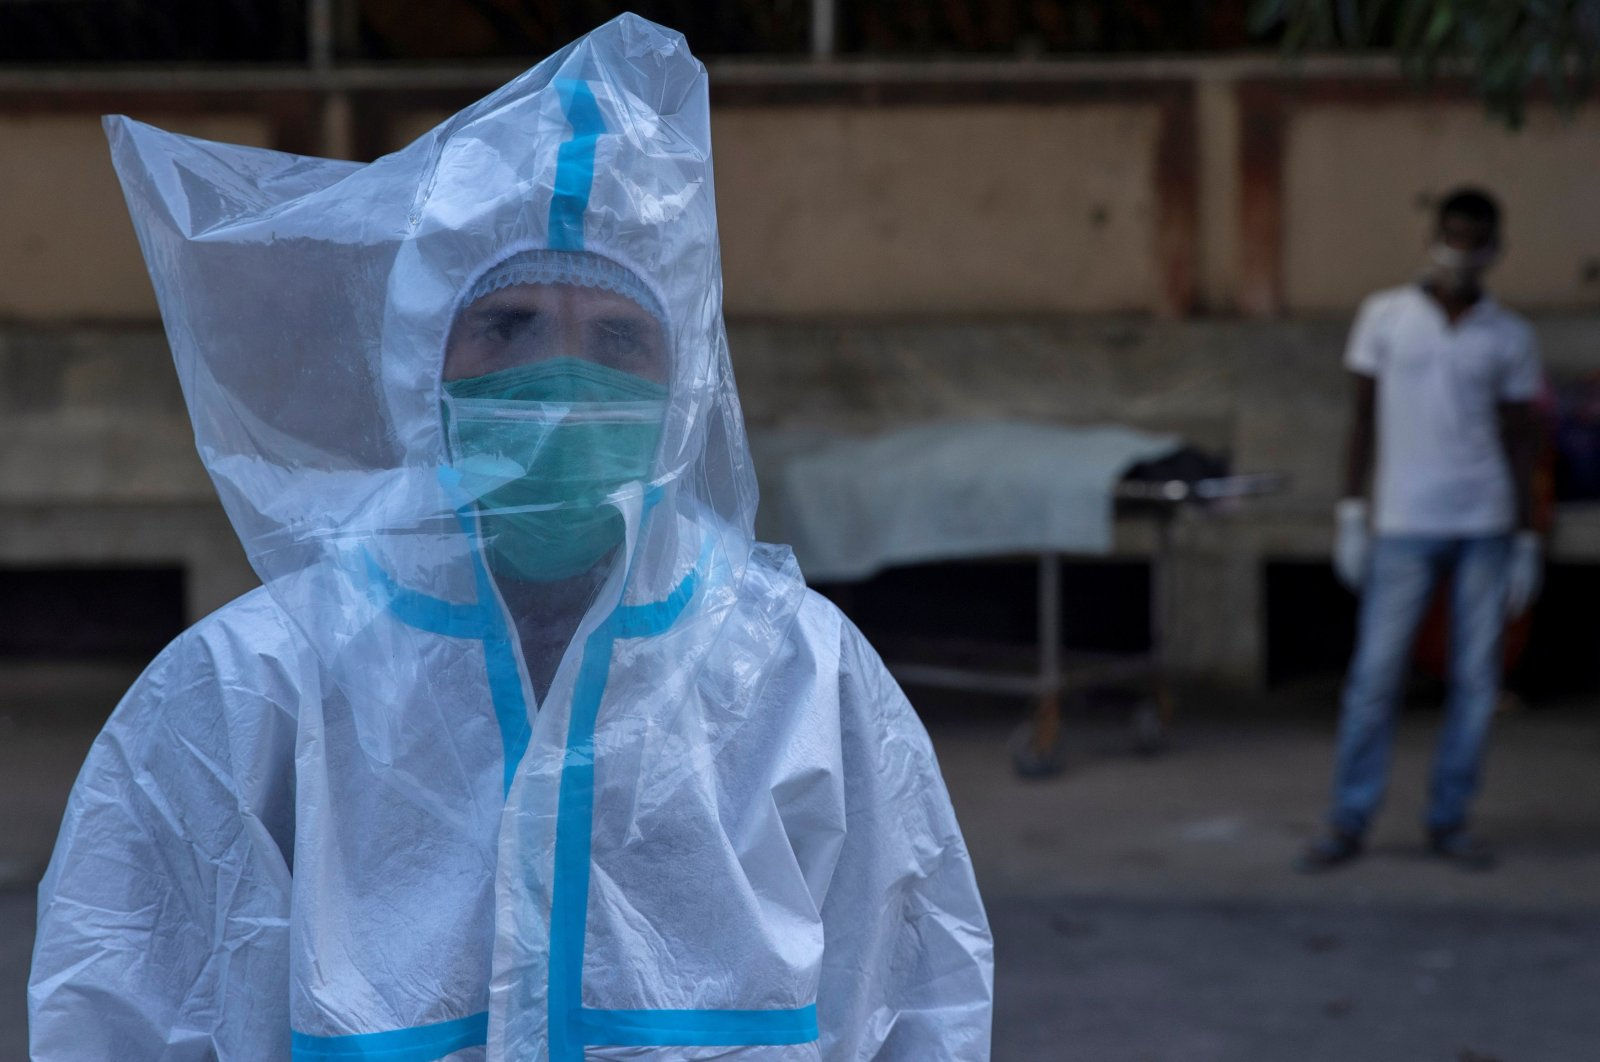 A medical worker wears personal protective equipment (PPE) and a plastic bag over his head at Jawahar Lal Nehru Medical College and Hospital, Bhagalpur, July 27, 2020. (REUTERS Photo)